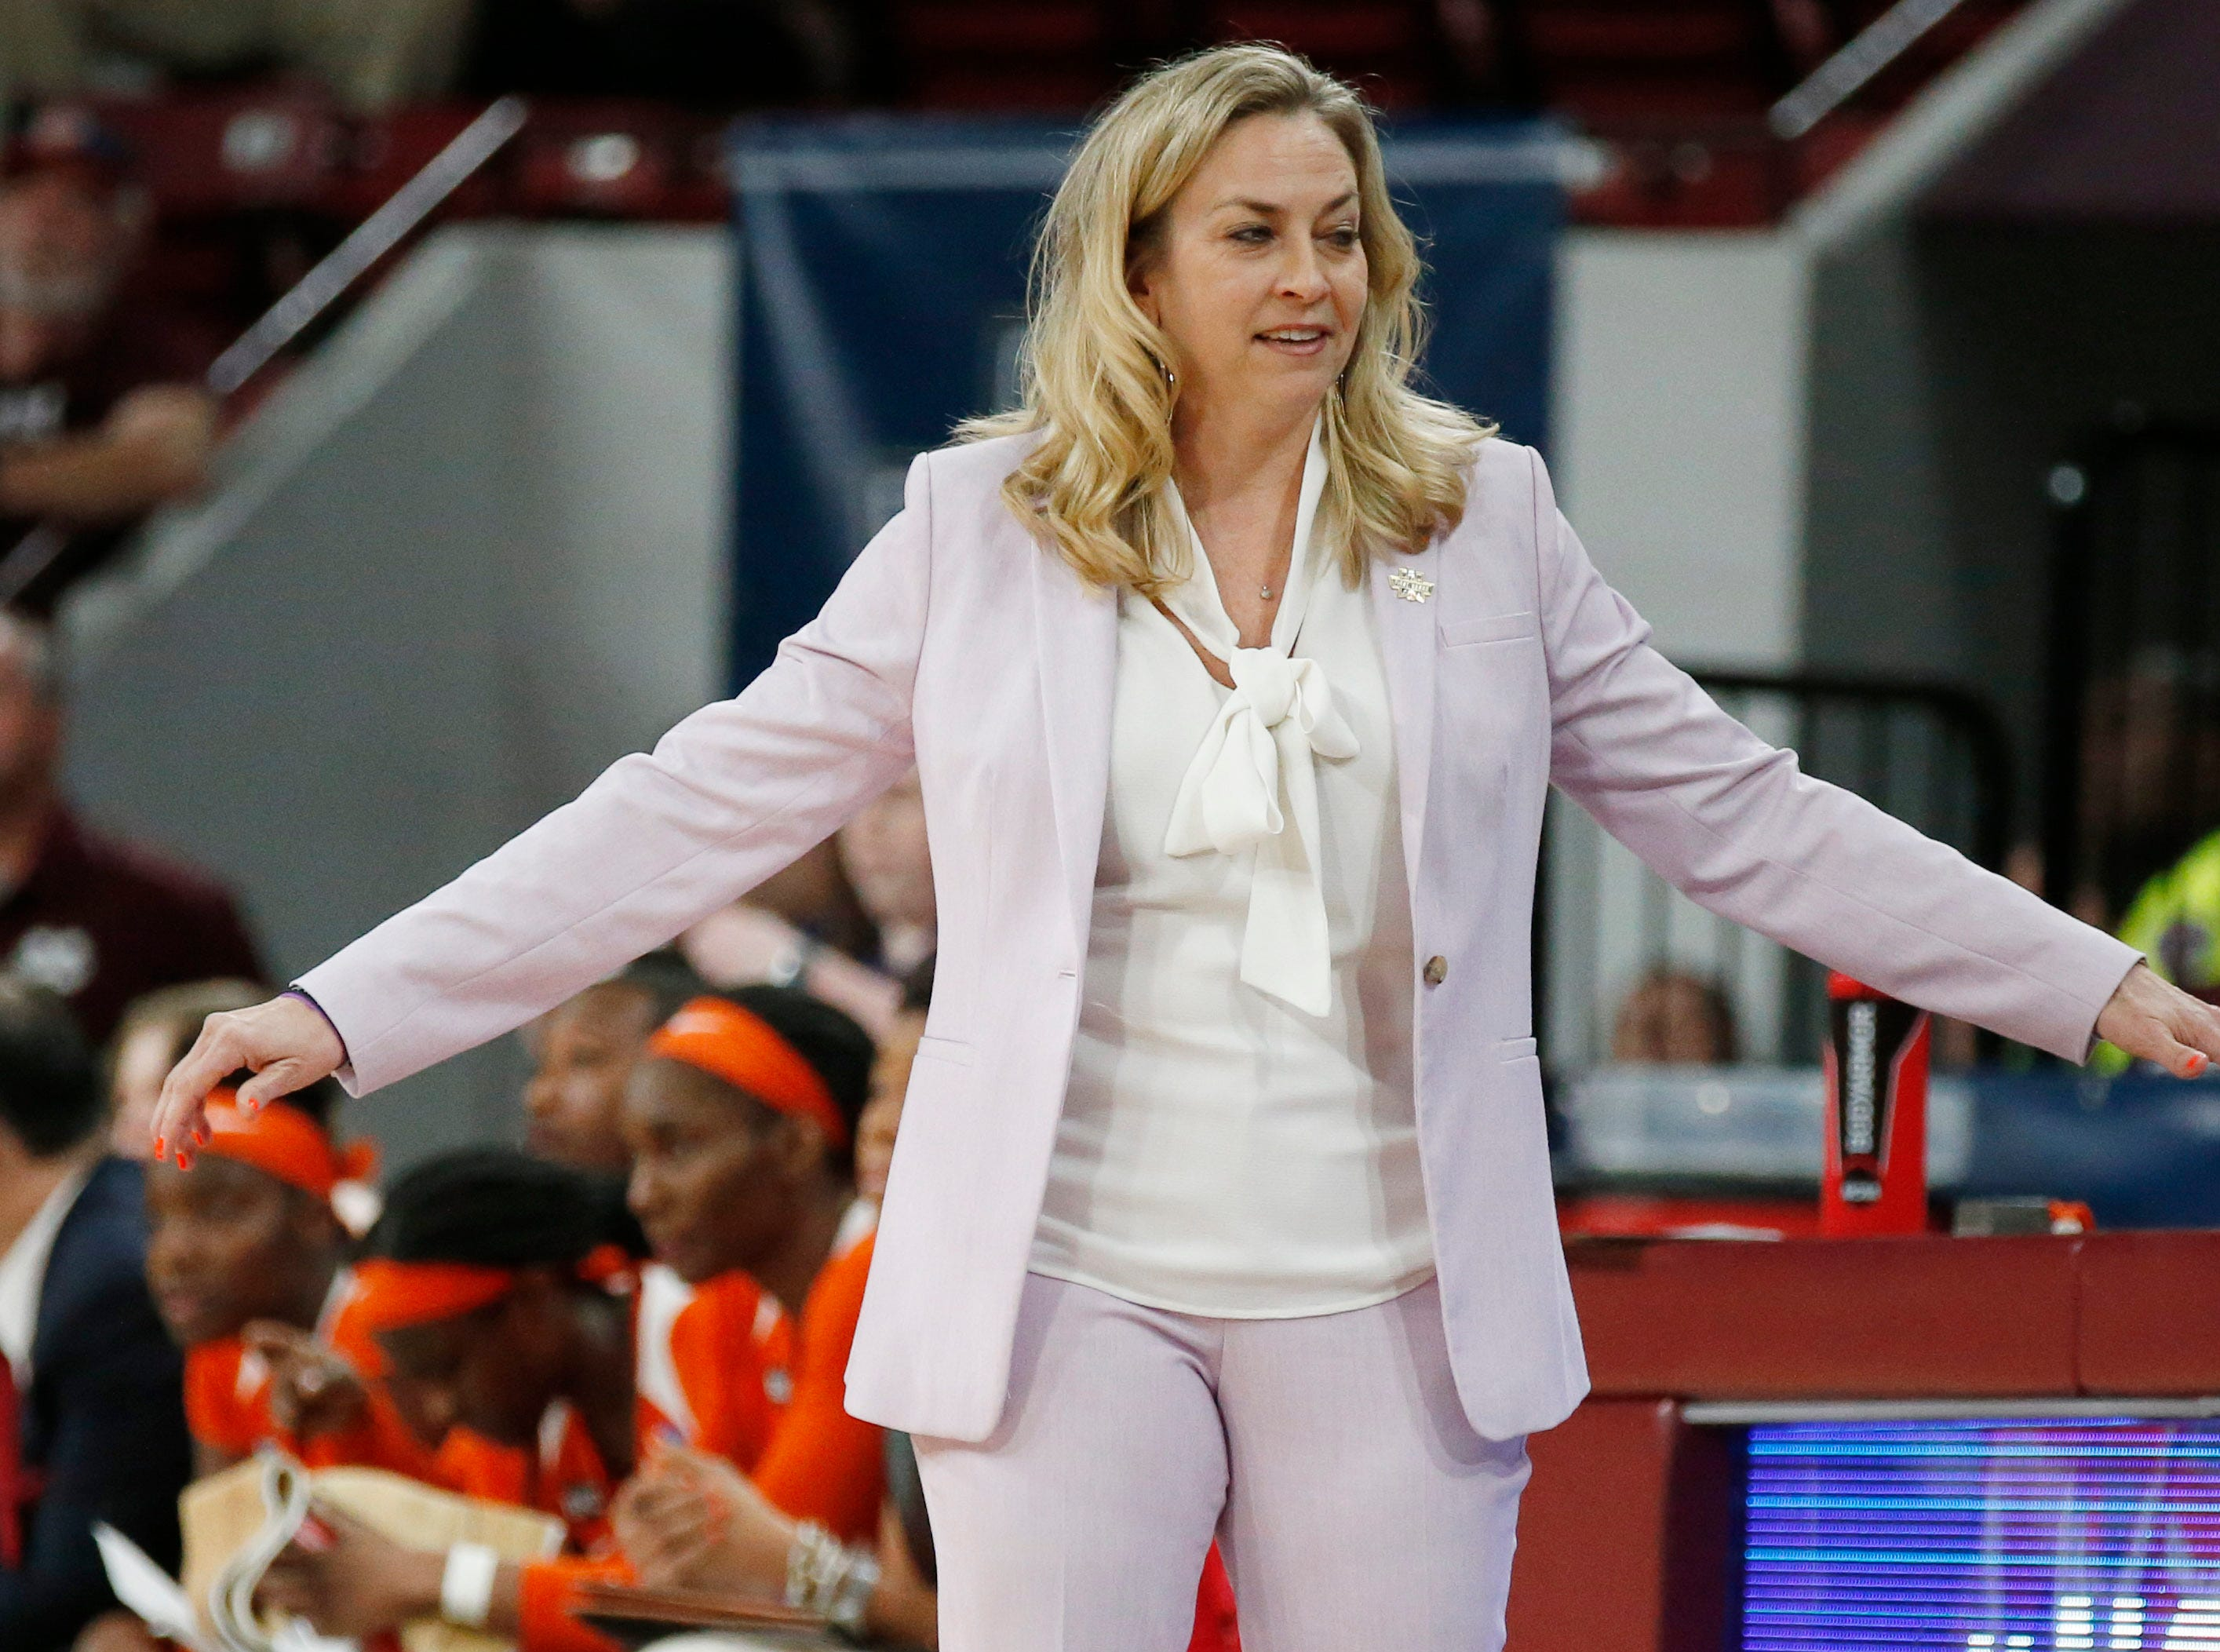 Clemson head coach Amanda Butler gestures towards the officials during the second half of a first round women's college basketball game against South Dakota in the NCAA Tournament in Starkville, Miss., Friday, March 22, 2019. (AP Photo/Rogelio V. Solis)